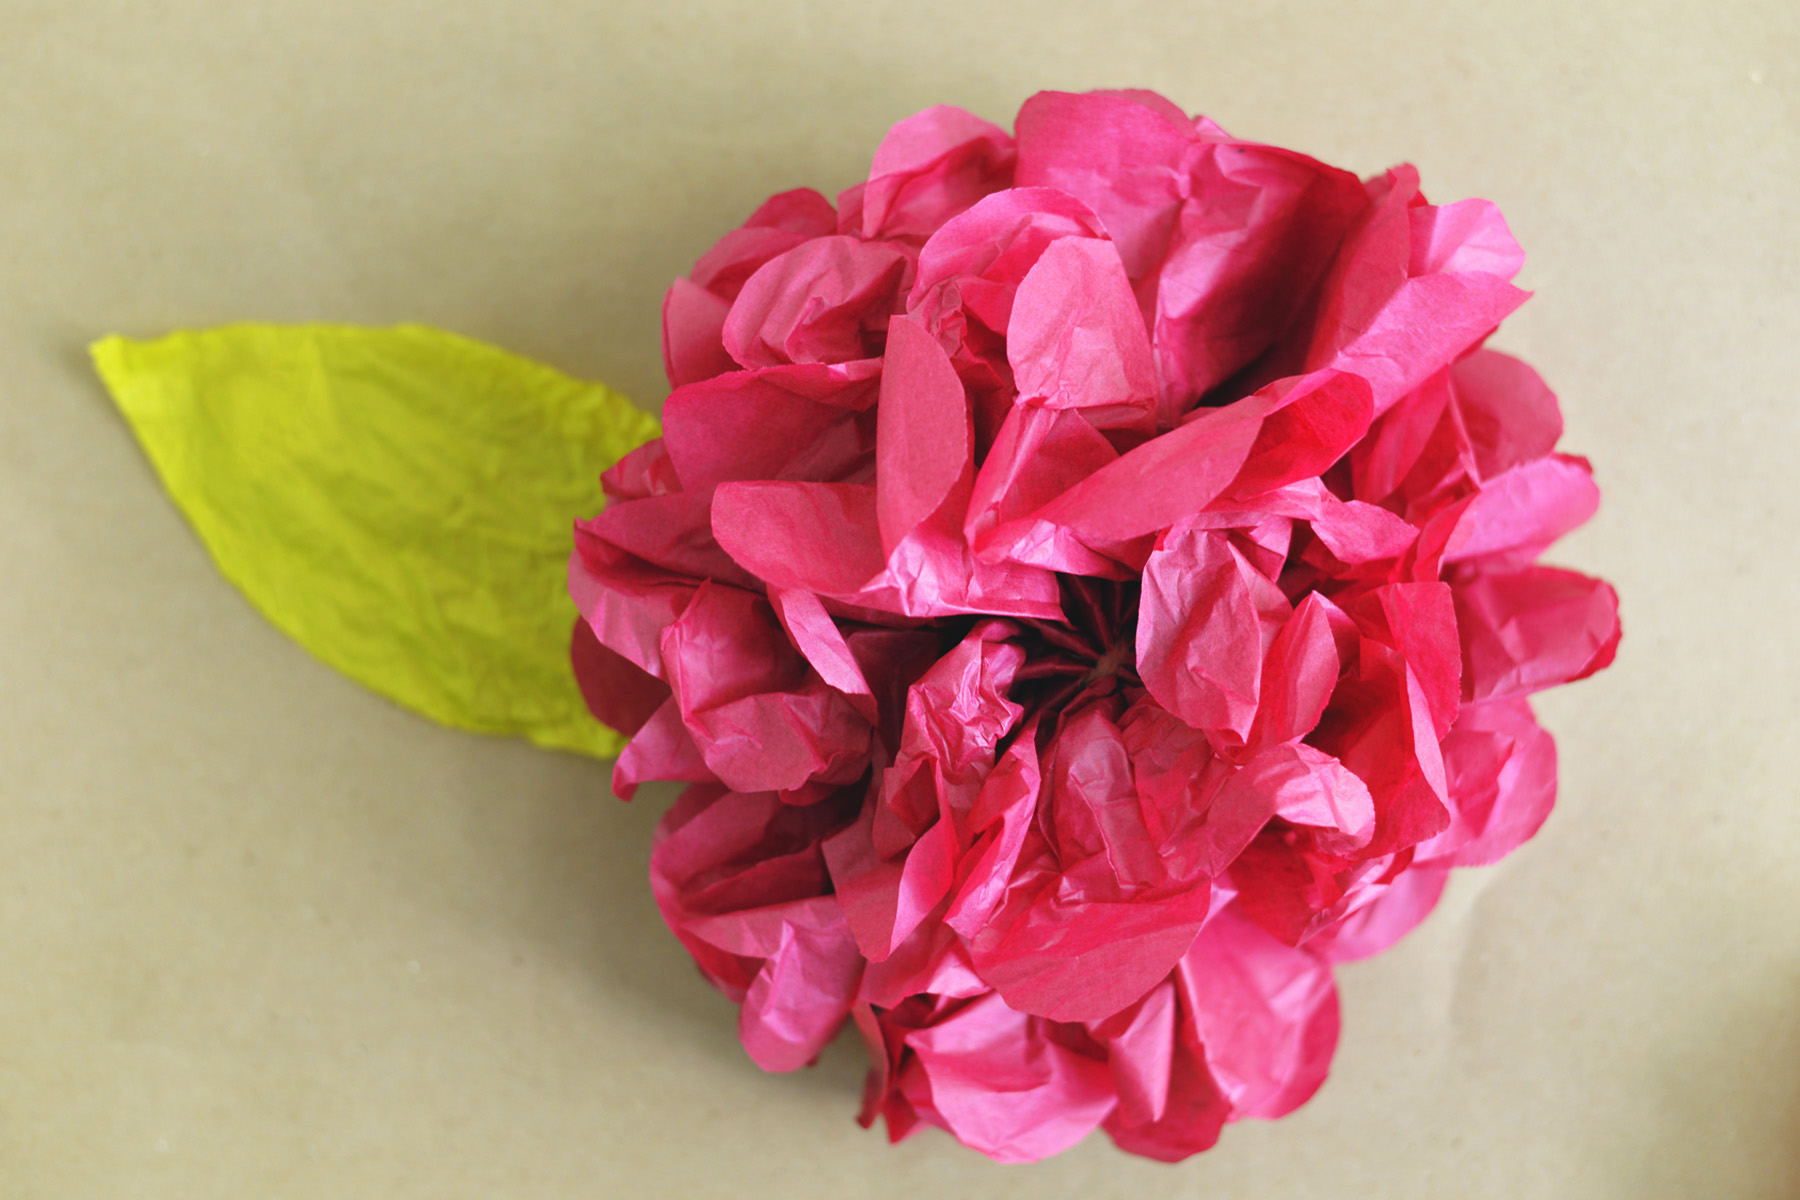 Tissue paper flower backdrop diy tissue paper flower backdrop mightylinksfo Images